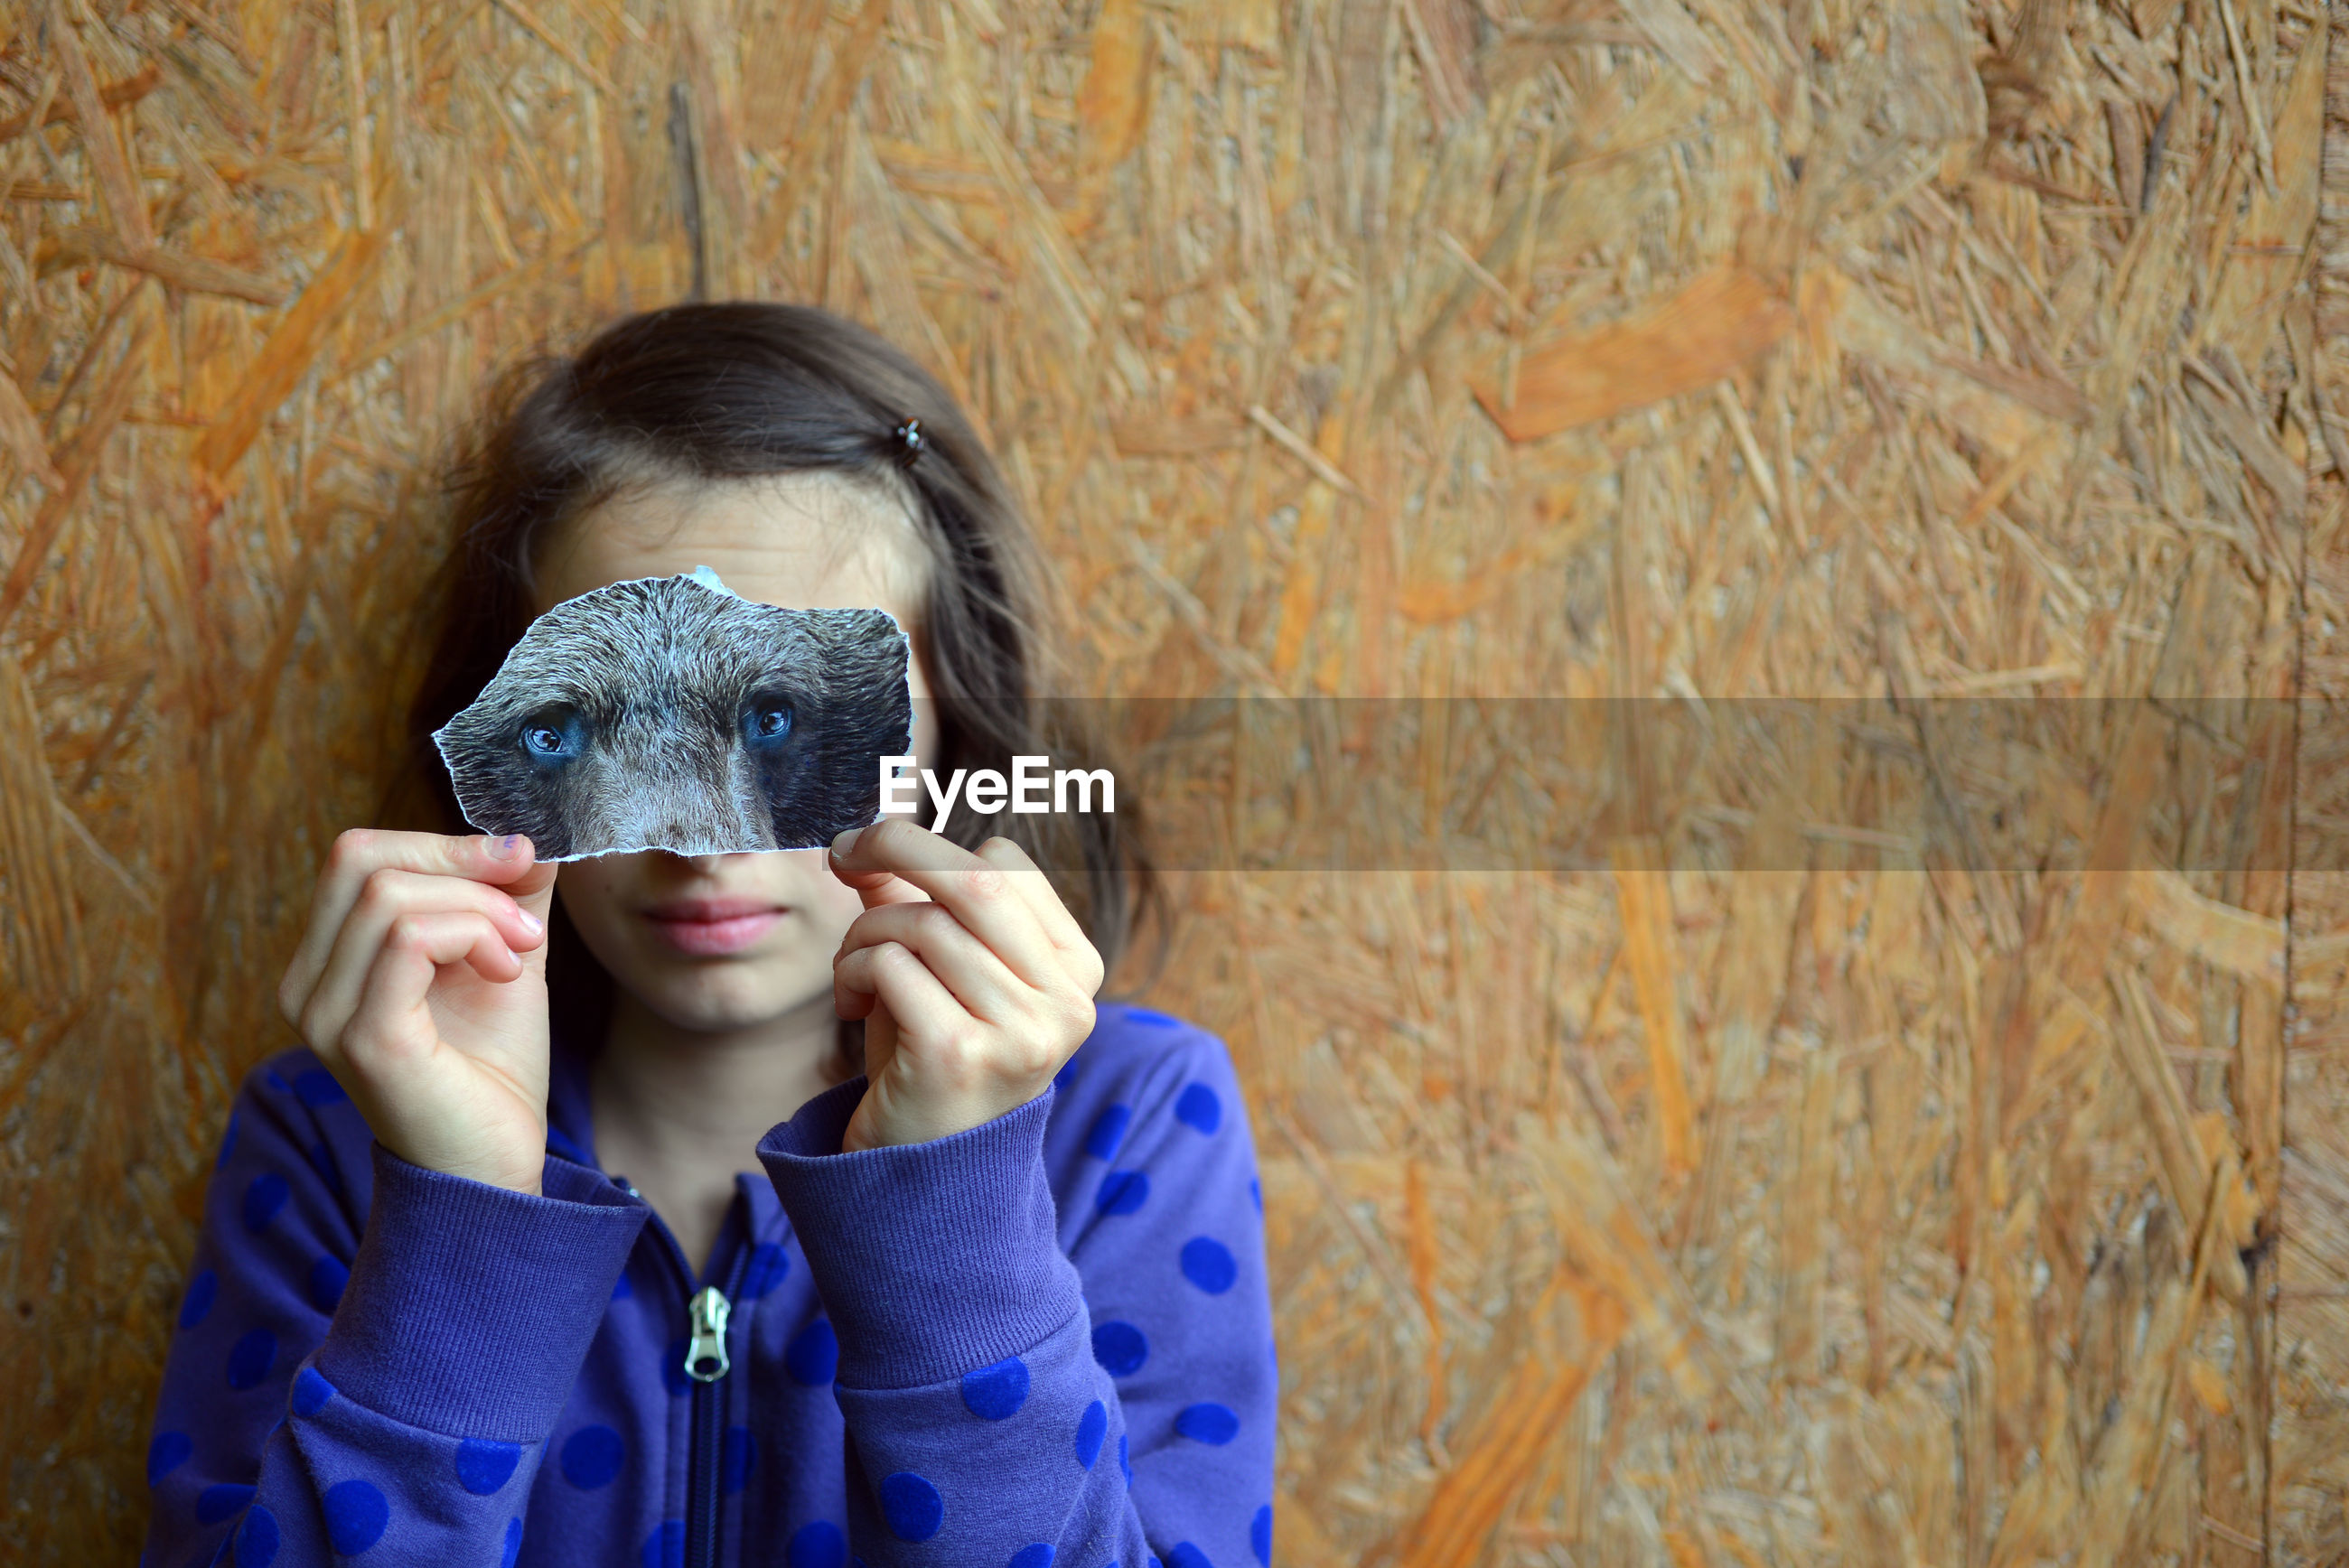 Close-up portrait of girl holding animal eyes against wall